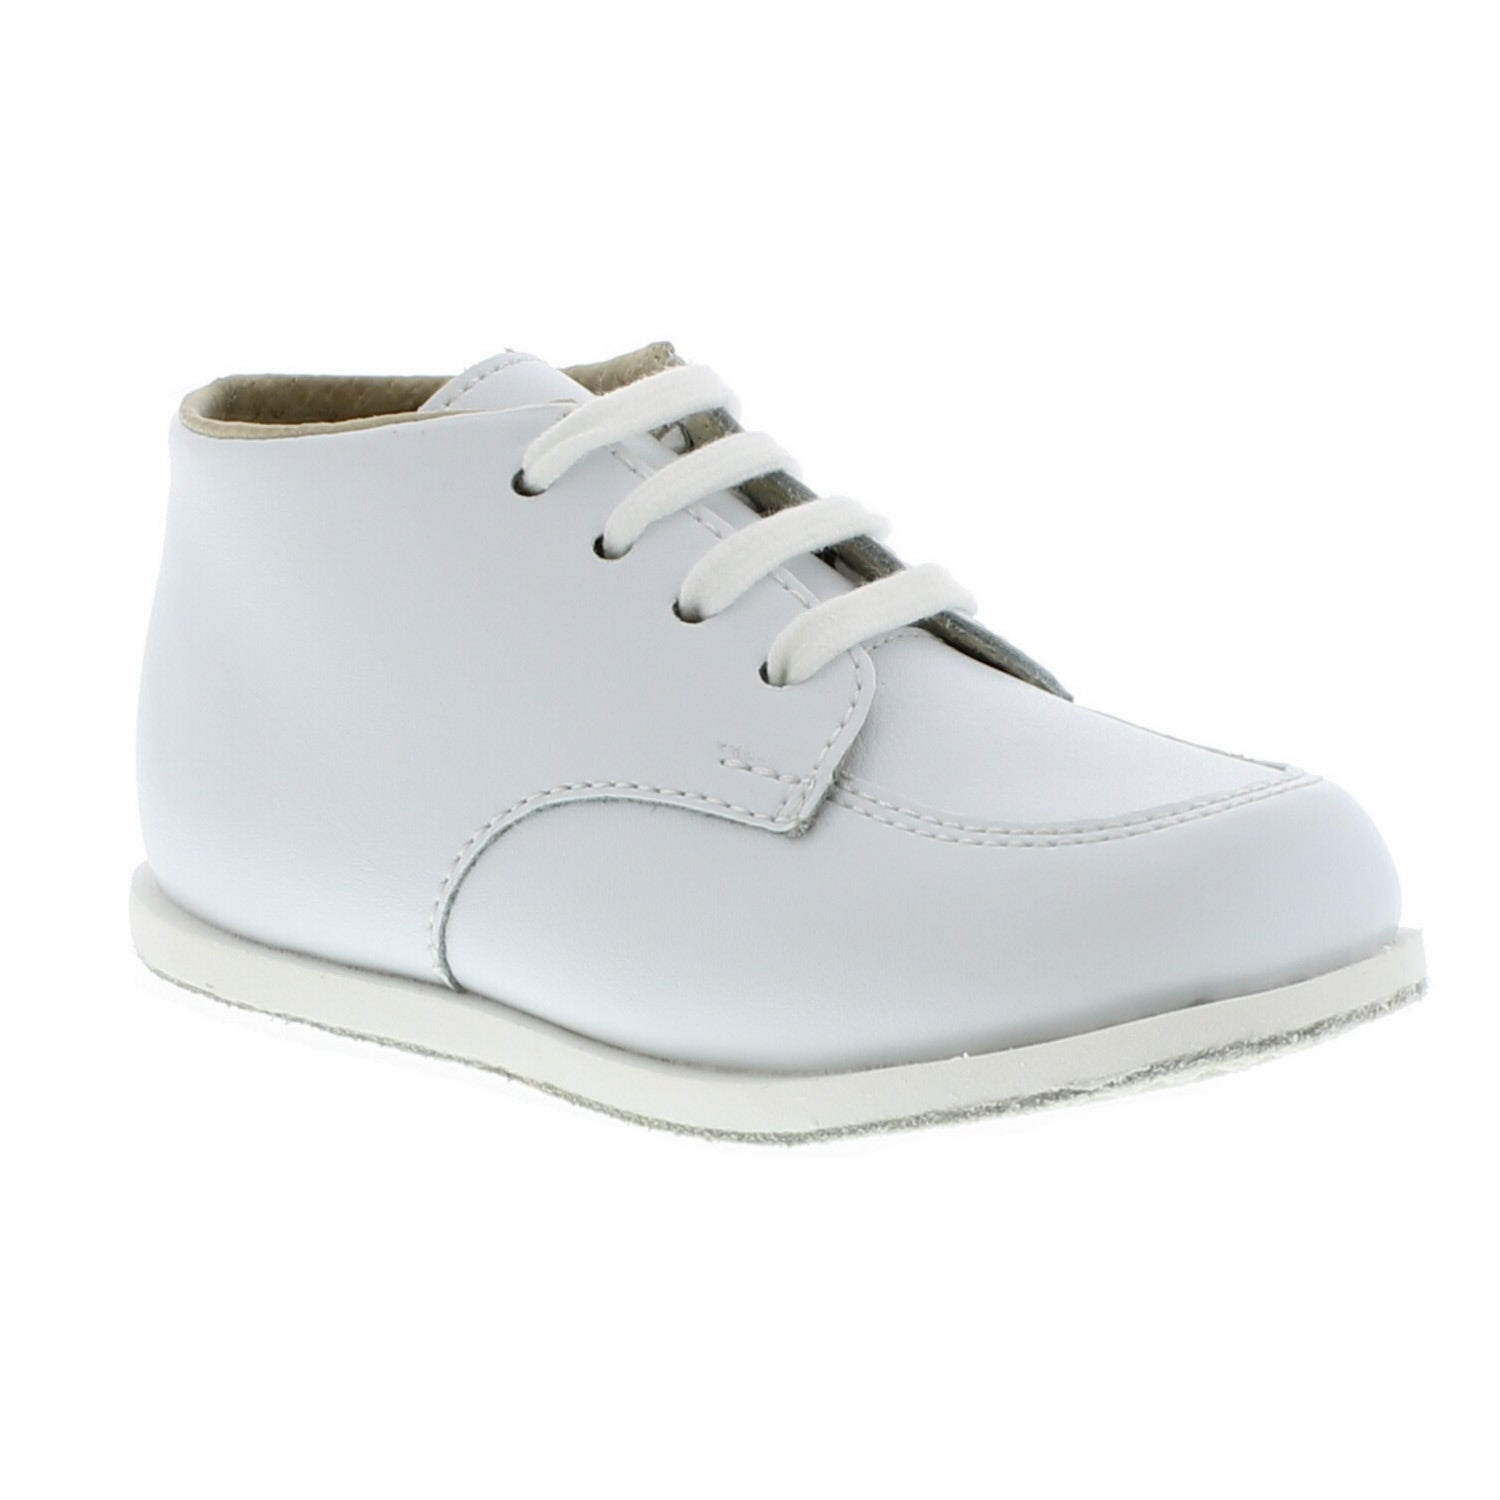 Seraph - White by Ponseti's Shoes - Ponseti's Shoes